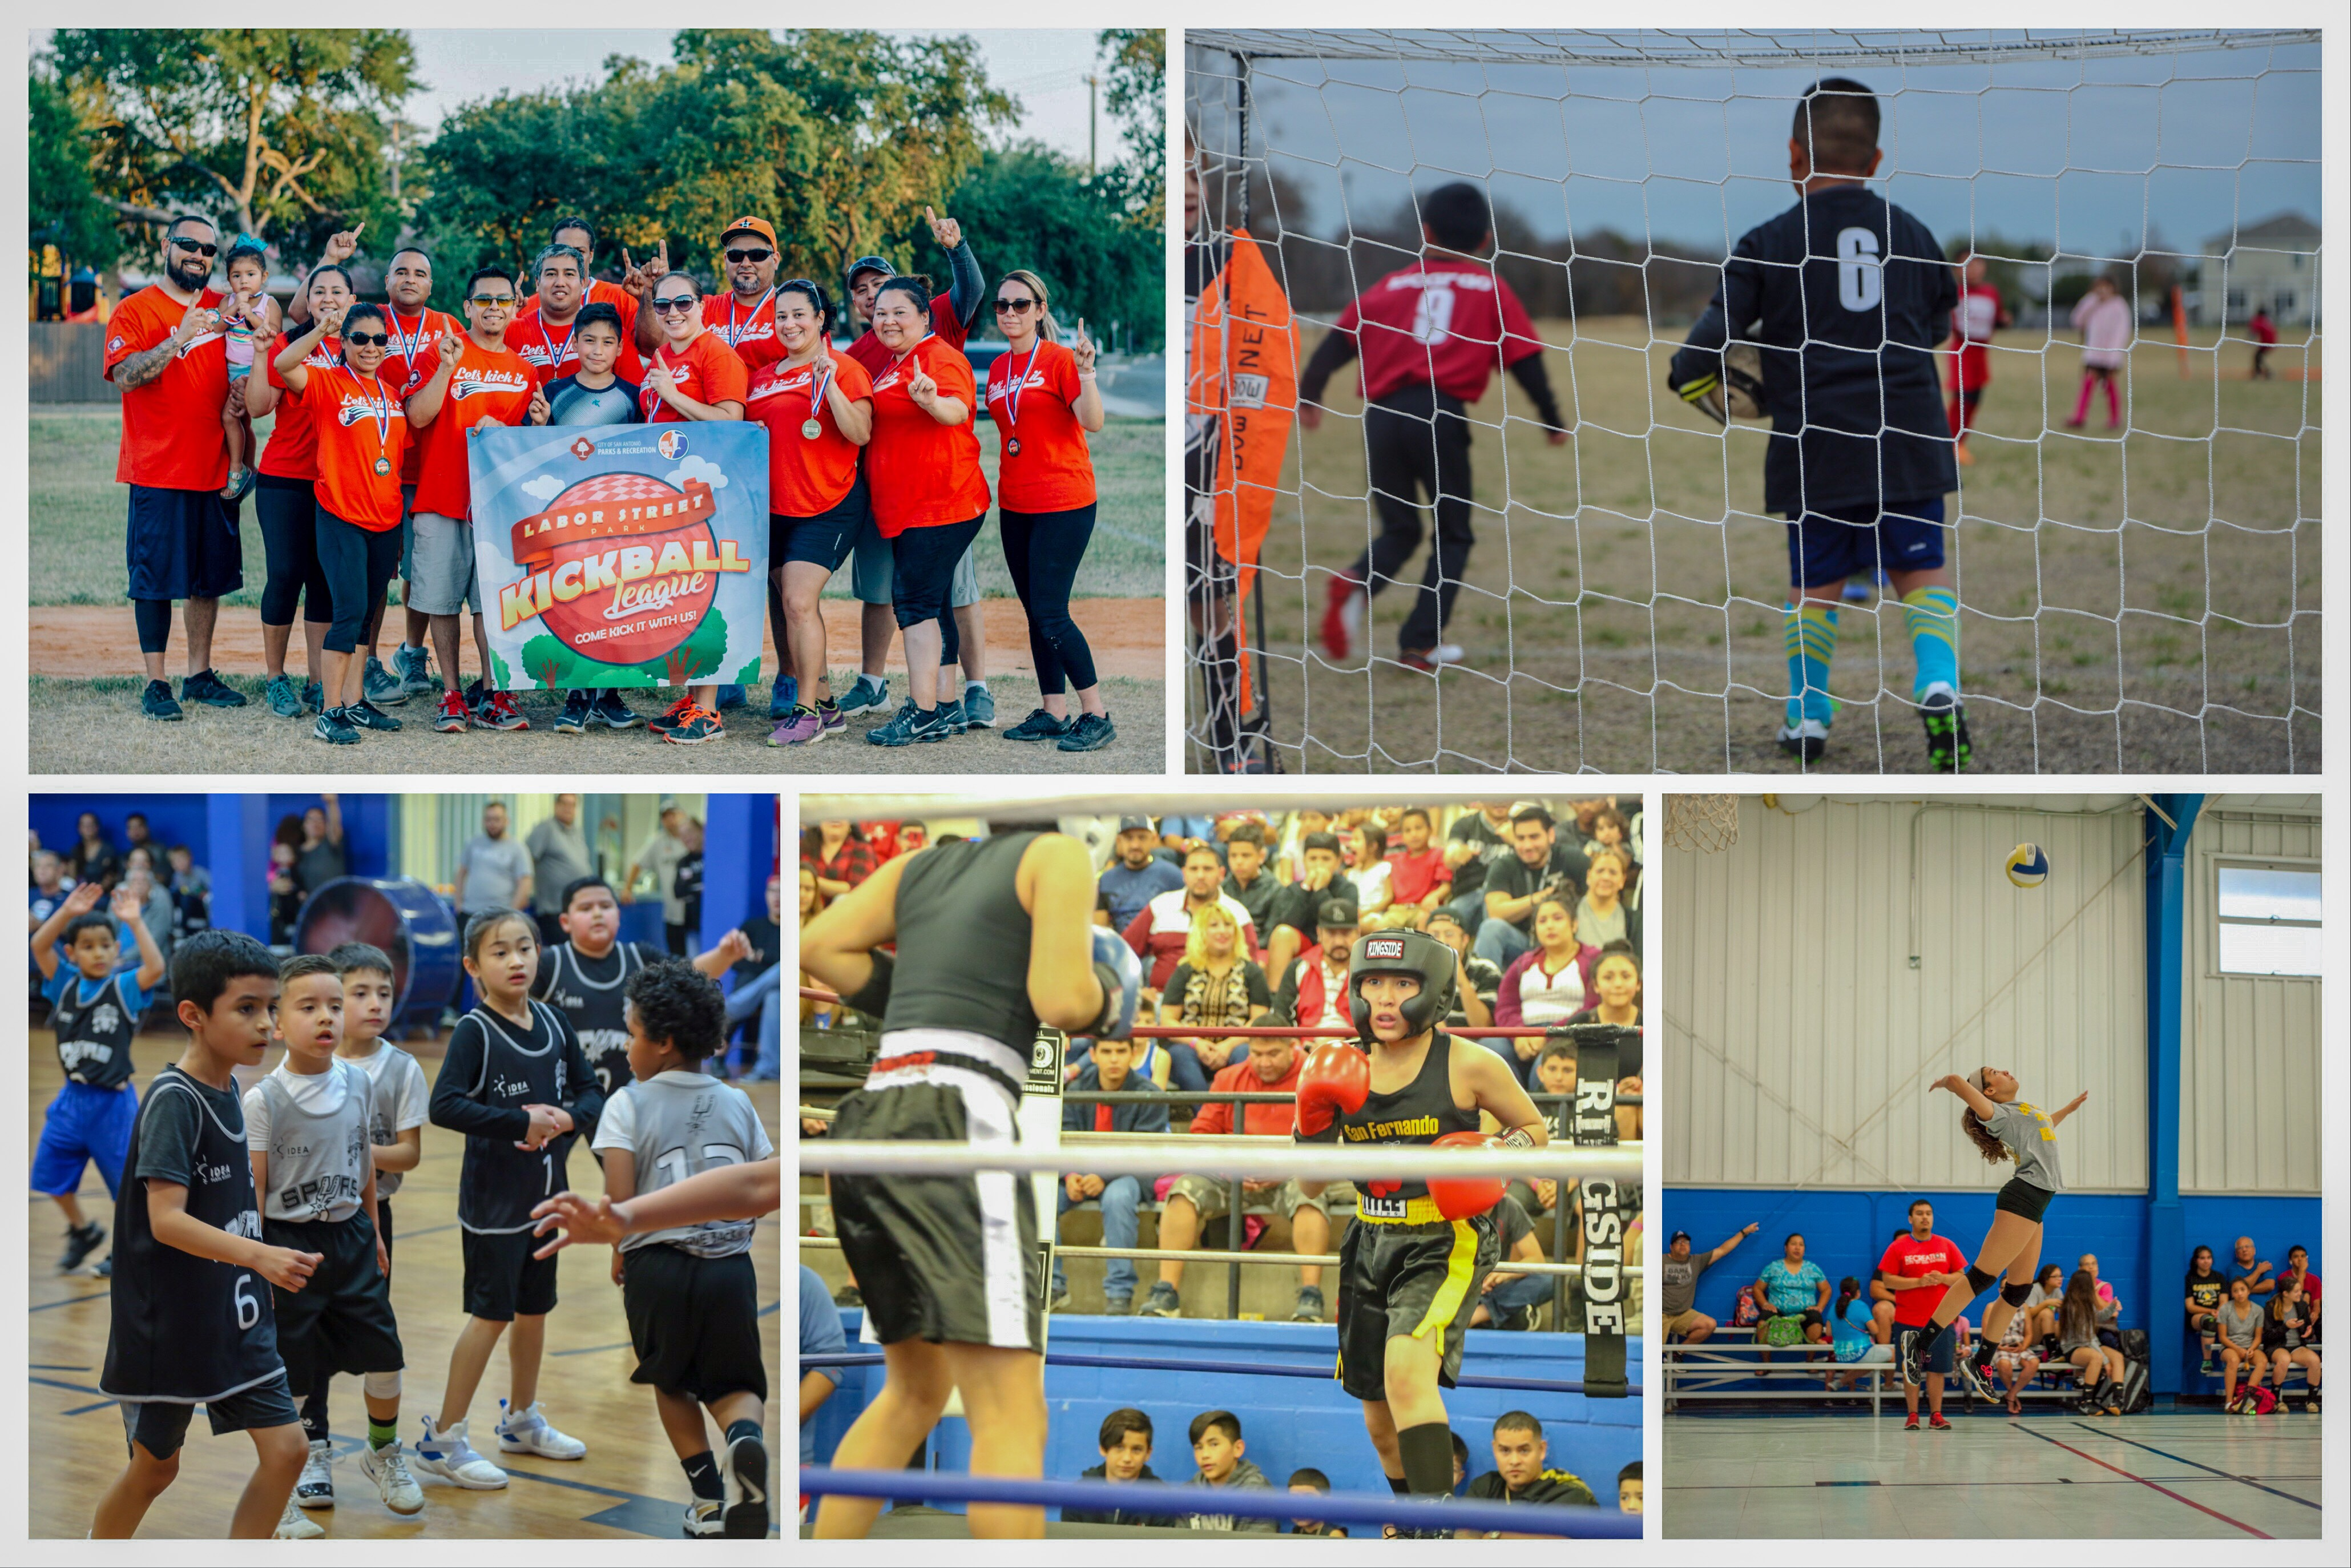 Collage of youth sports